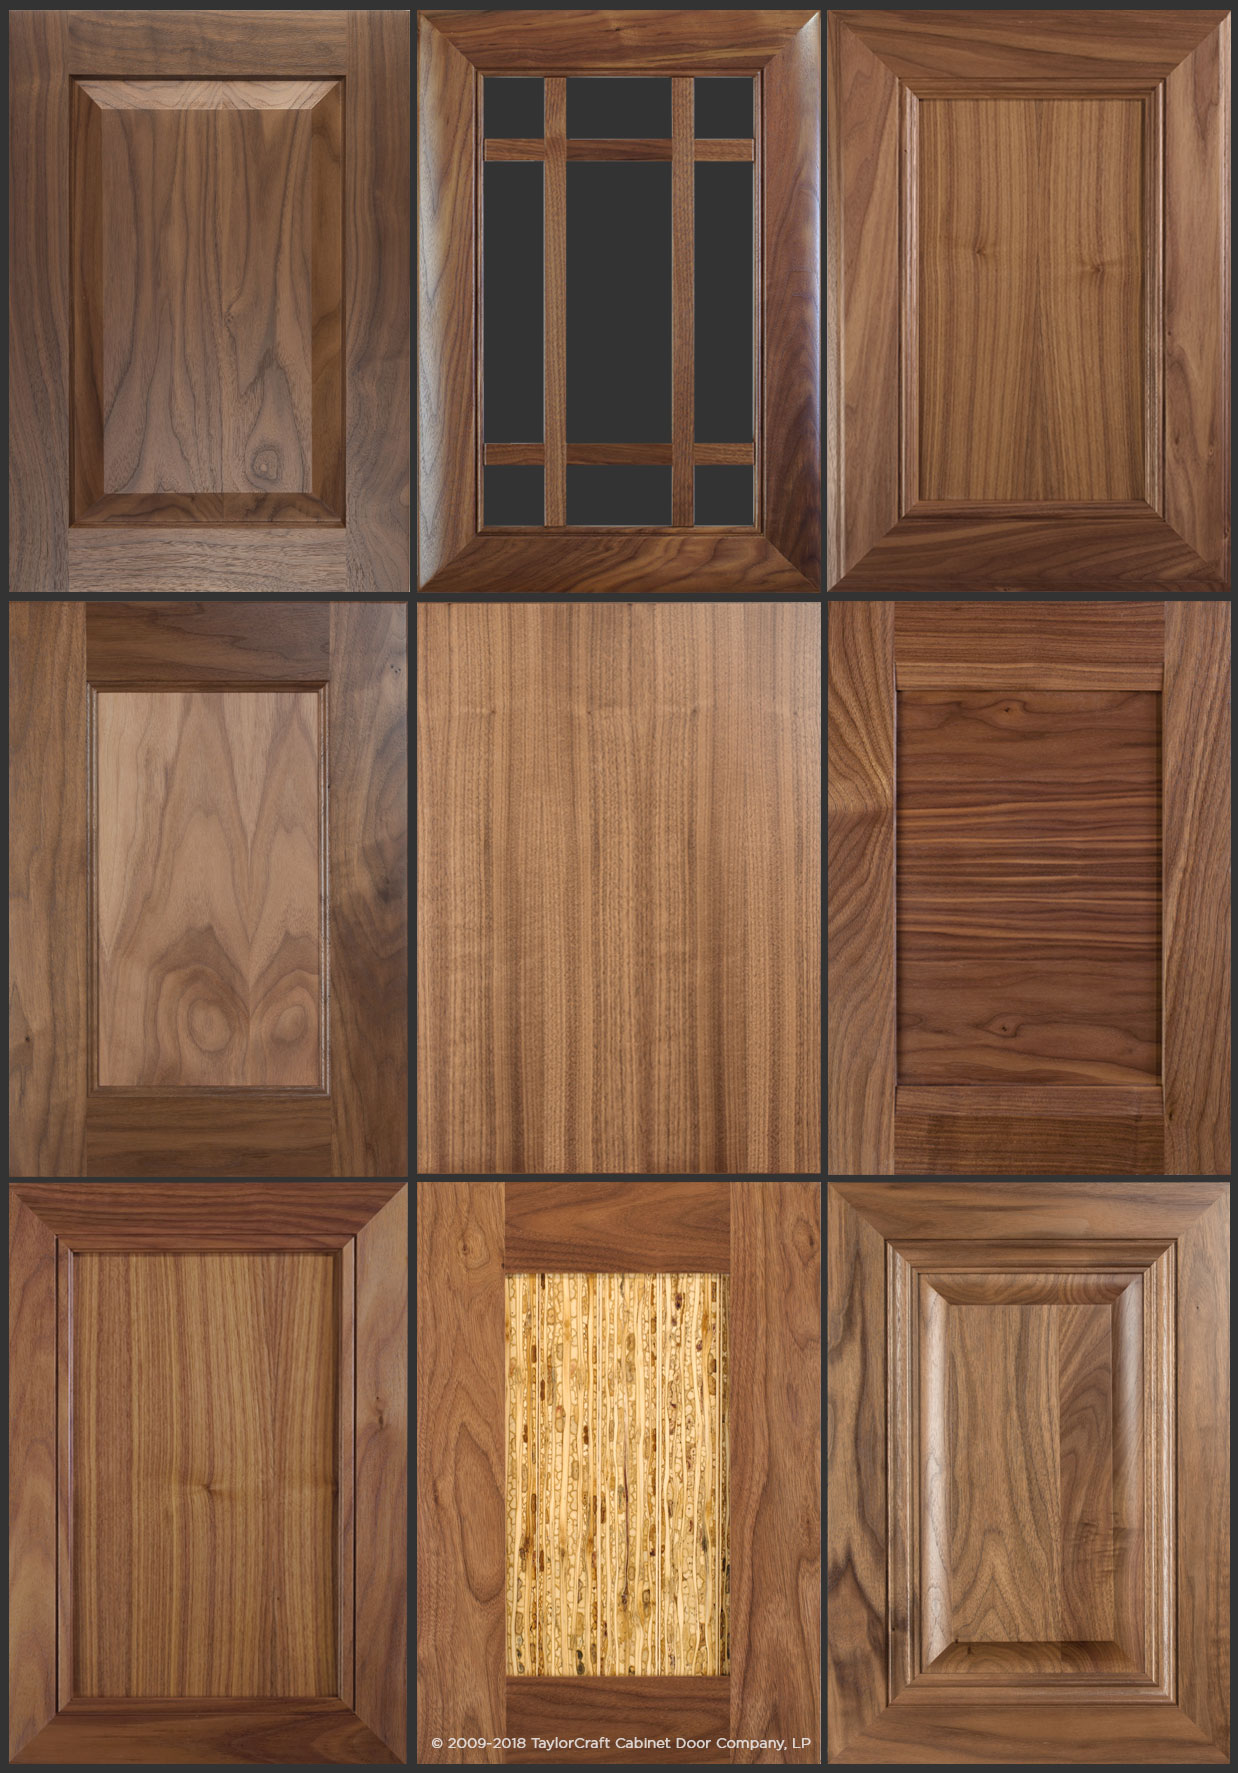 walnut cabinet doors by TaylorCraft Cabinet Door Company